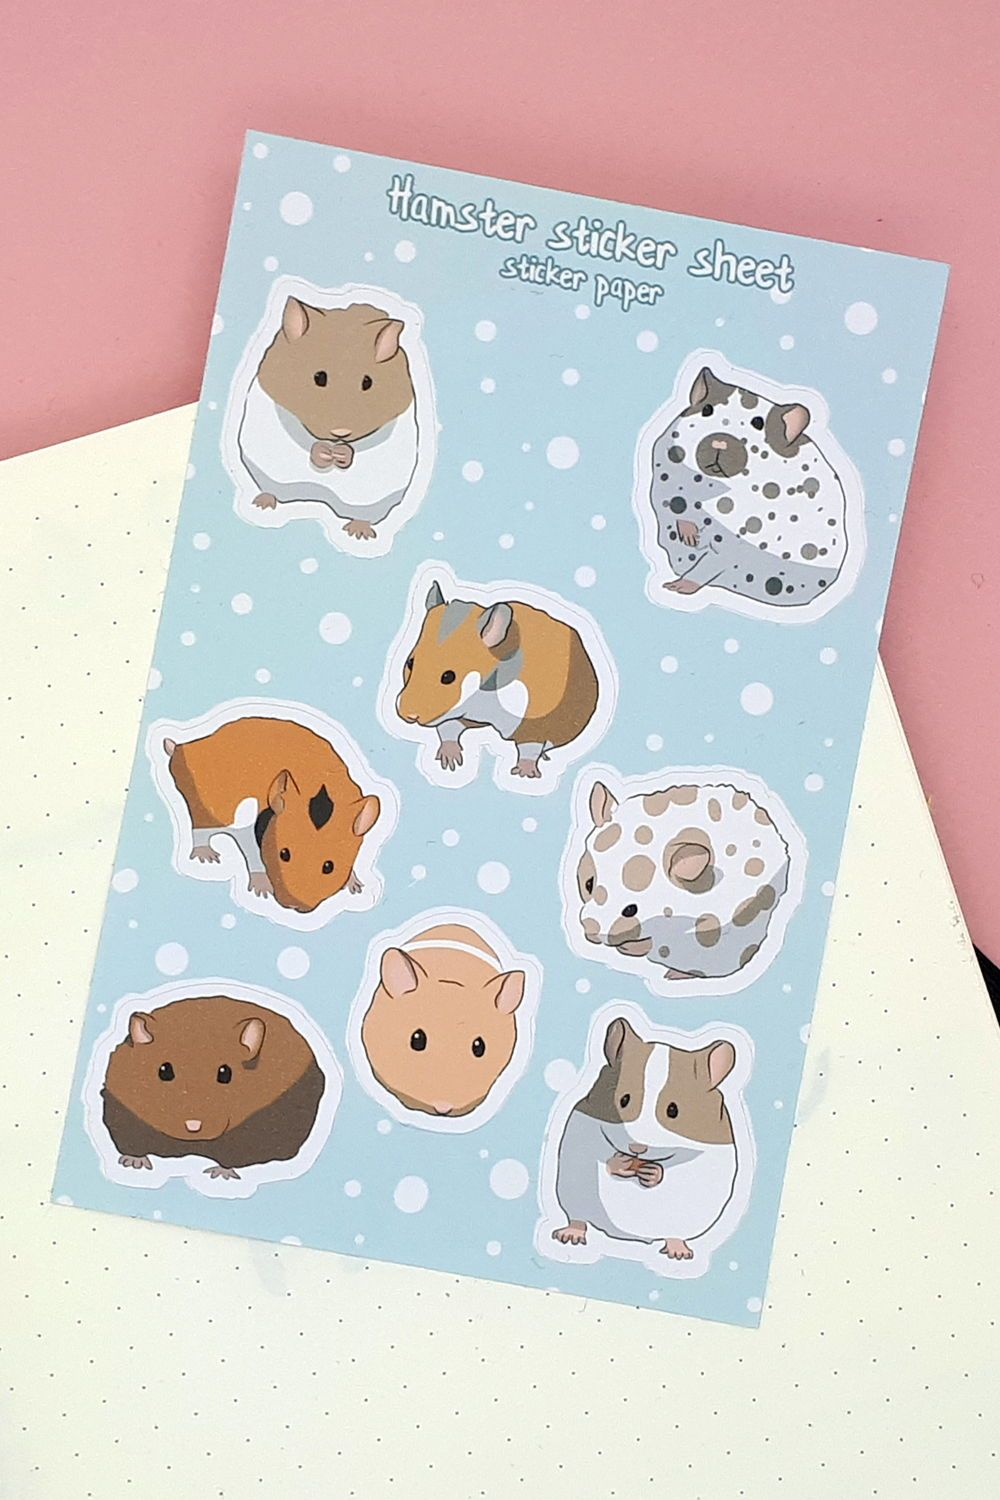 8 Cute Hamster Stickers For Your Bullet Journal Planner Etsy In 2020 Vinyl Sticker Paper Planner Bullet Journal Sticker Paper